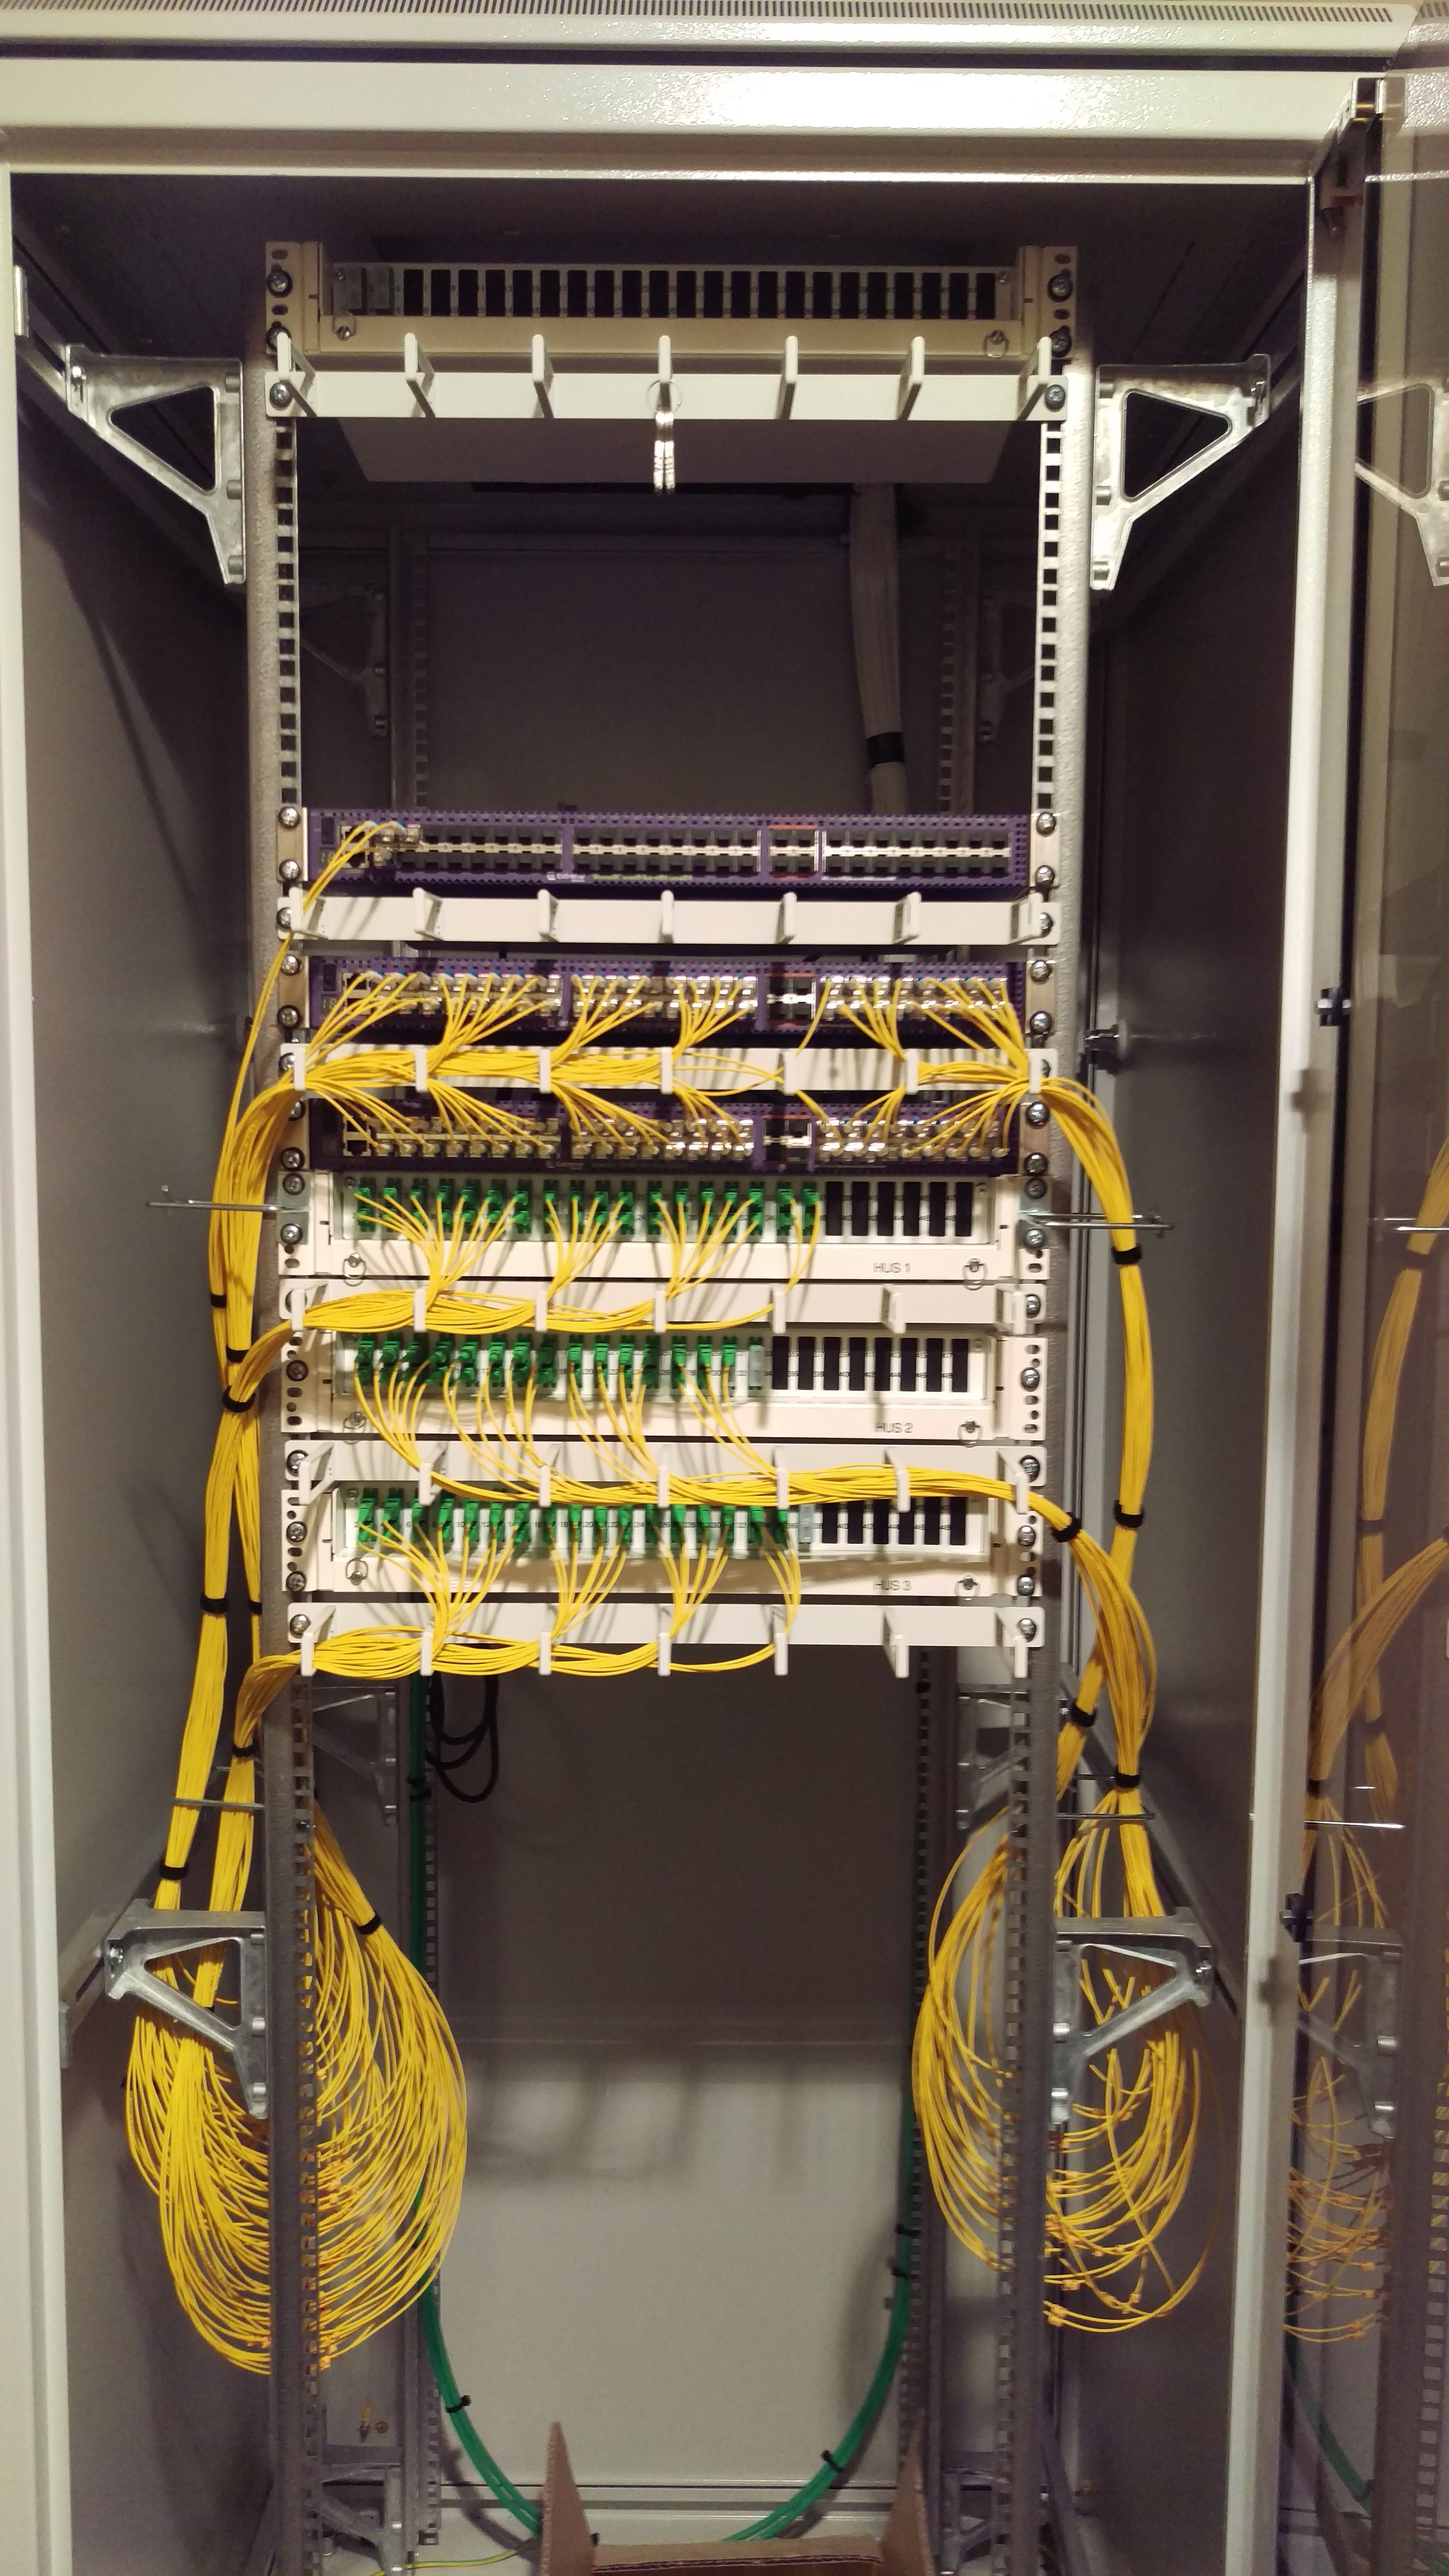 Rack In 2018 Cable Management Pinterest Fiber Optic And Schematic Installing Into An Sfp Switch They Did A Good Job For